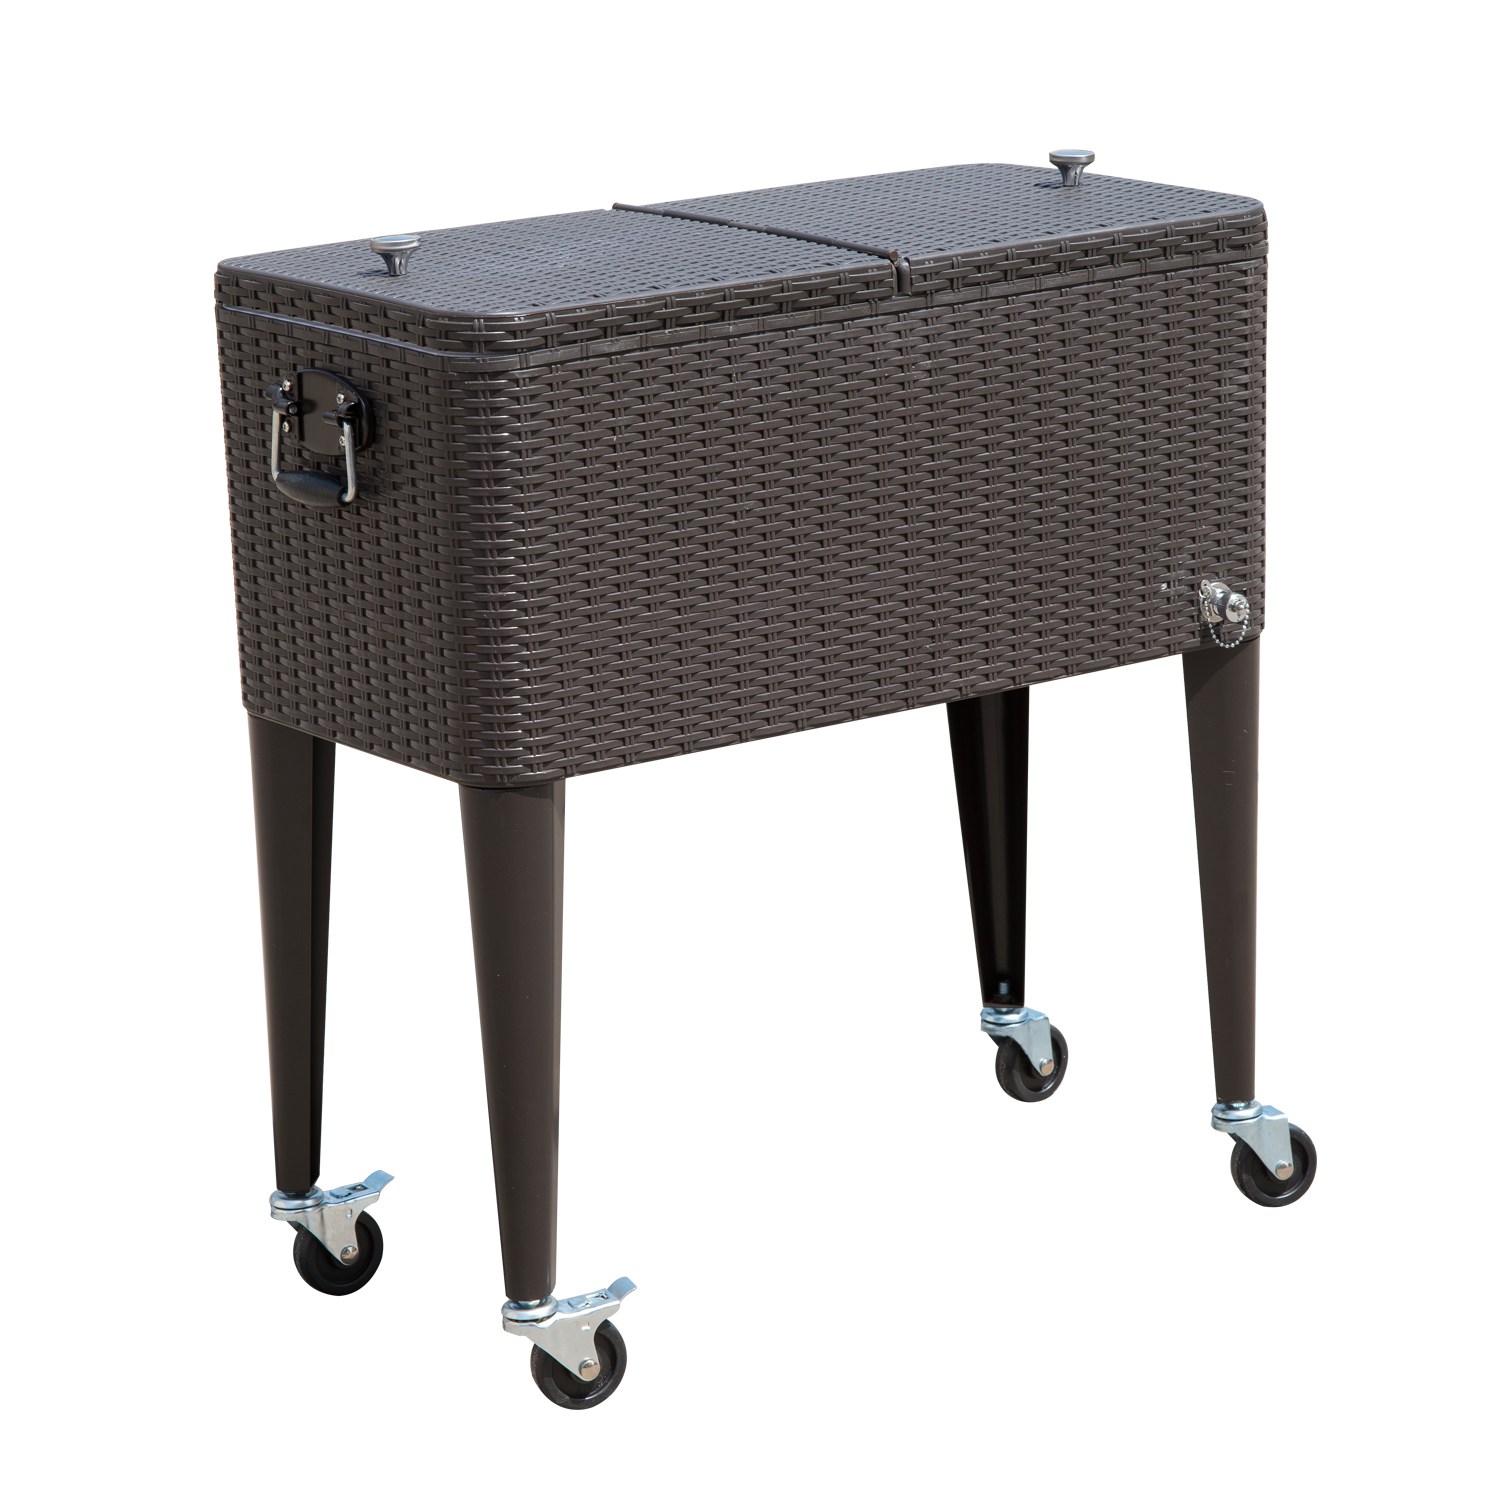 Outsunny 80 QT Rolling Ice Chest Portable Patio Party Drink Cooler Cart - Brown Wicker Pattern